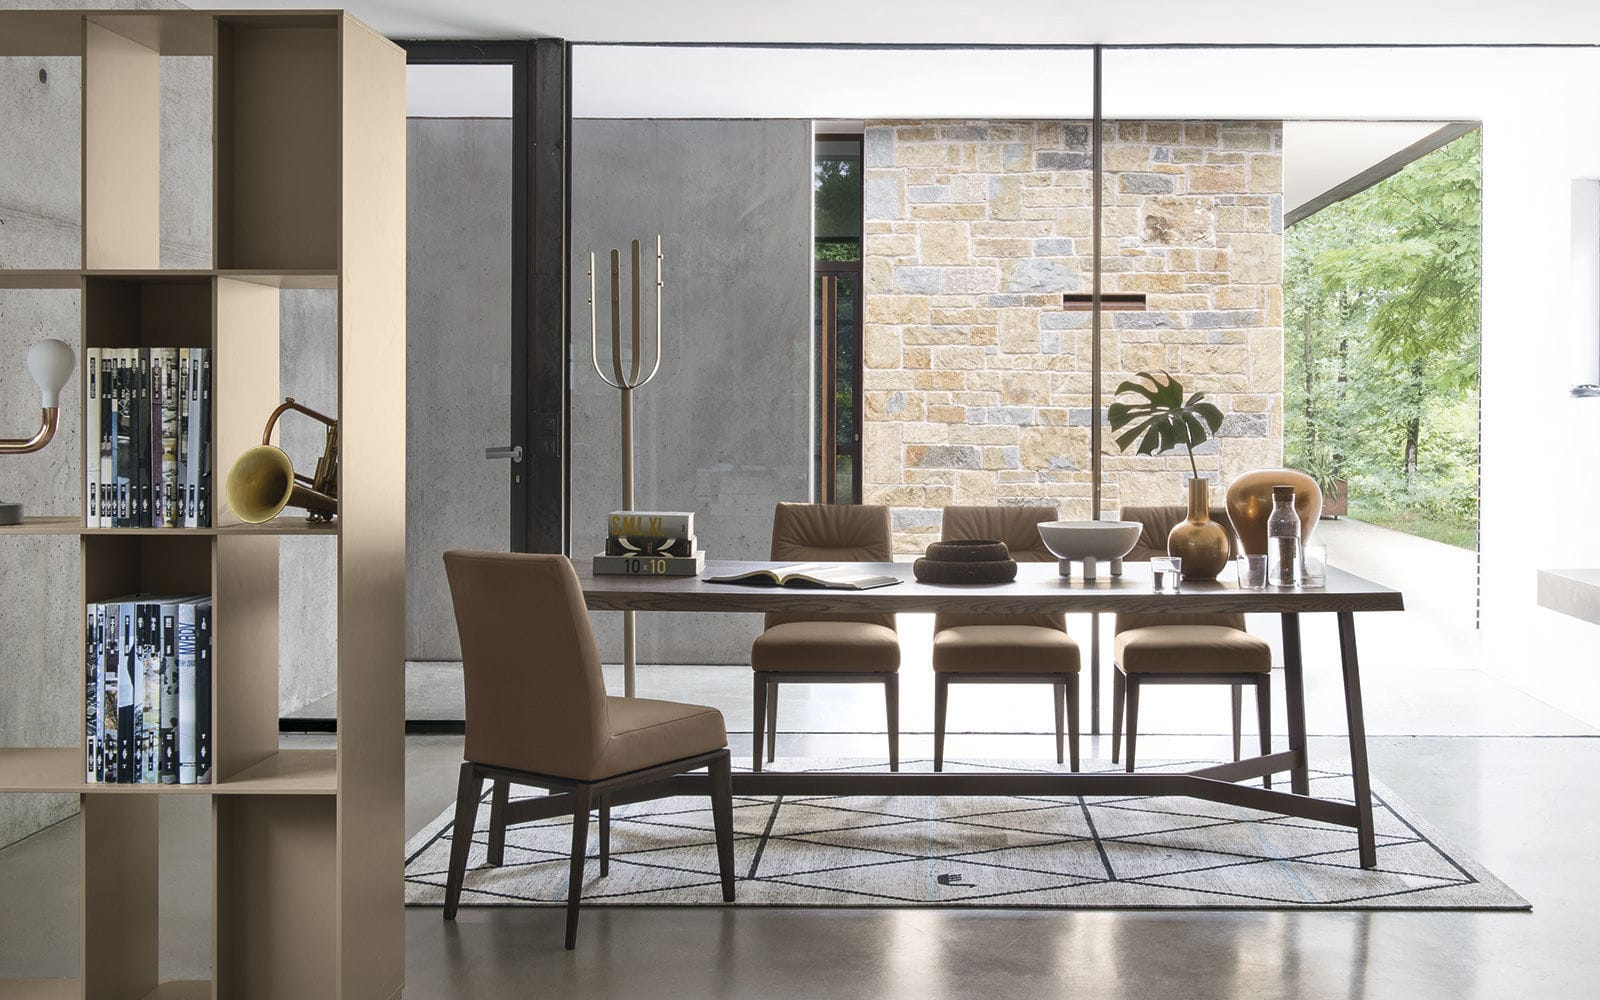 Contemporary dining table   wooden   metal   rectangular STATUS by  Busetti Garuti Redaelli calligaris. Contemporary dining table   wooden   metal   rectangular   STATUS